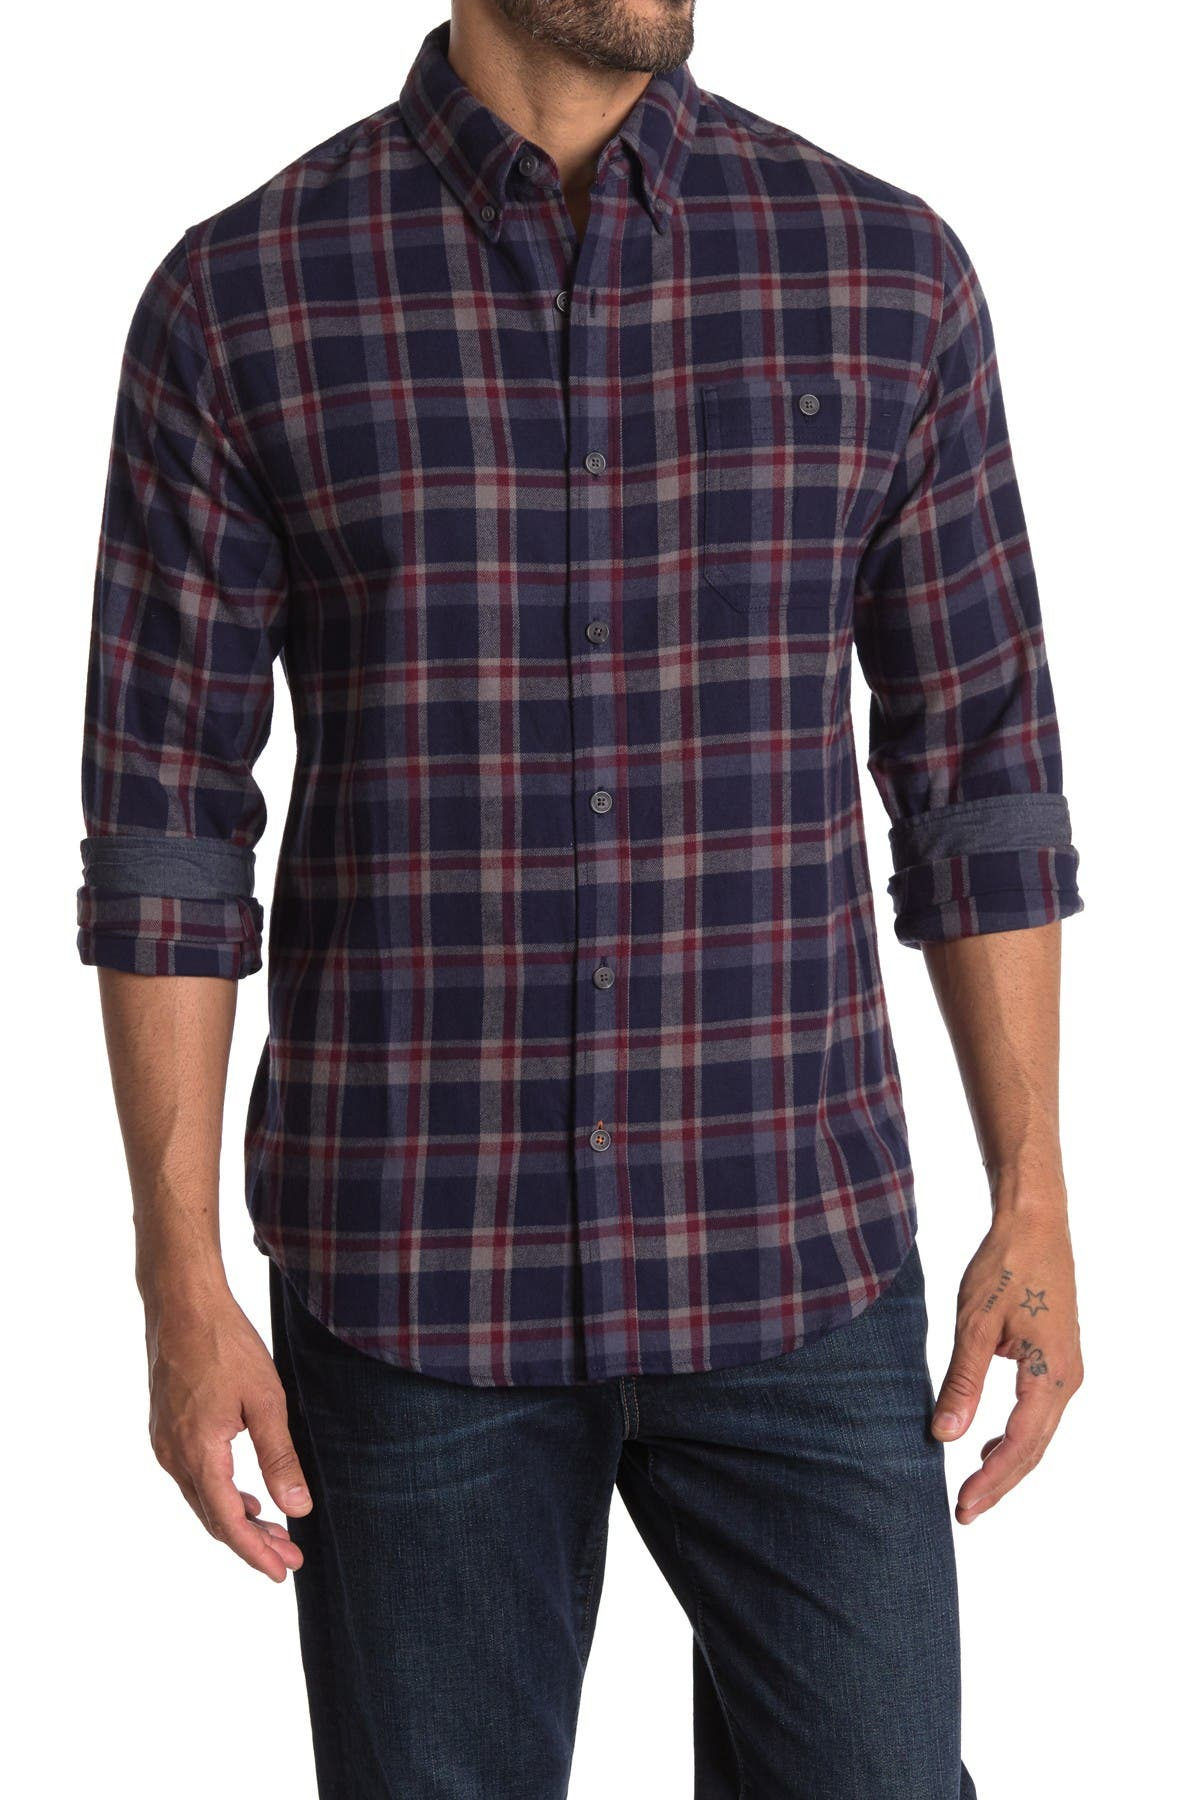 Image of weatherproof Antique Plaid Print Flannel Shirt